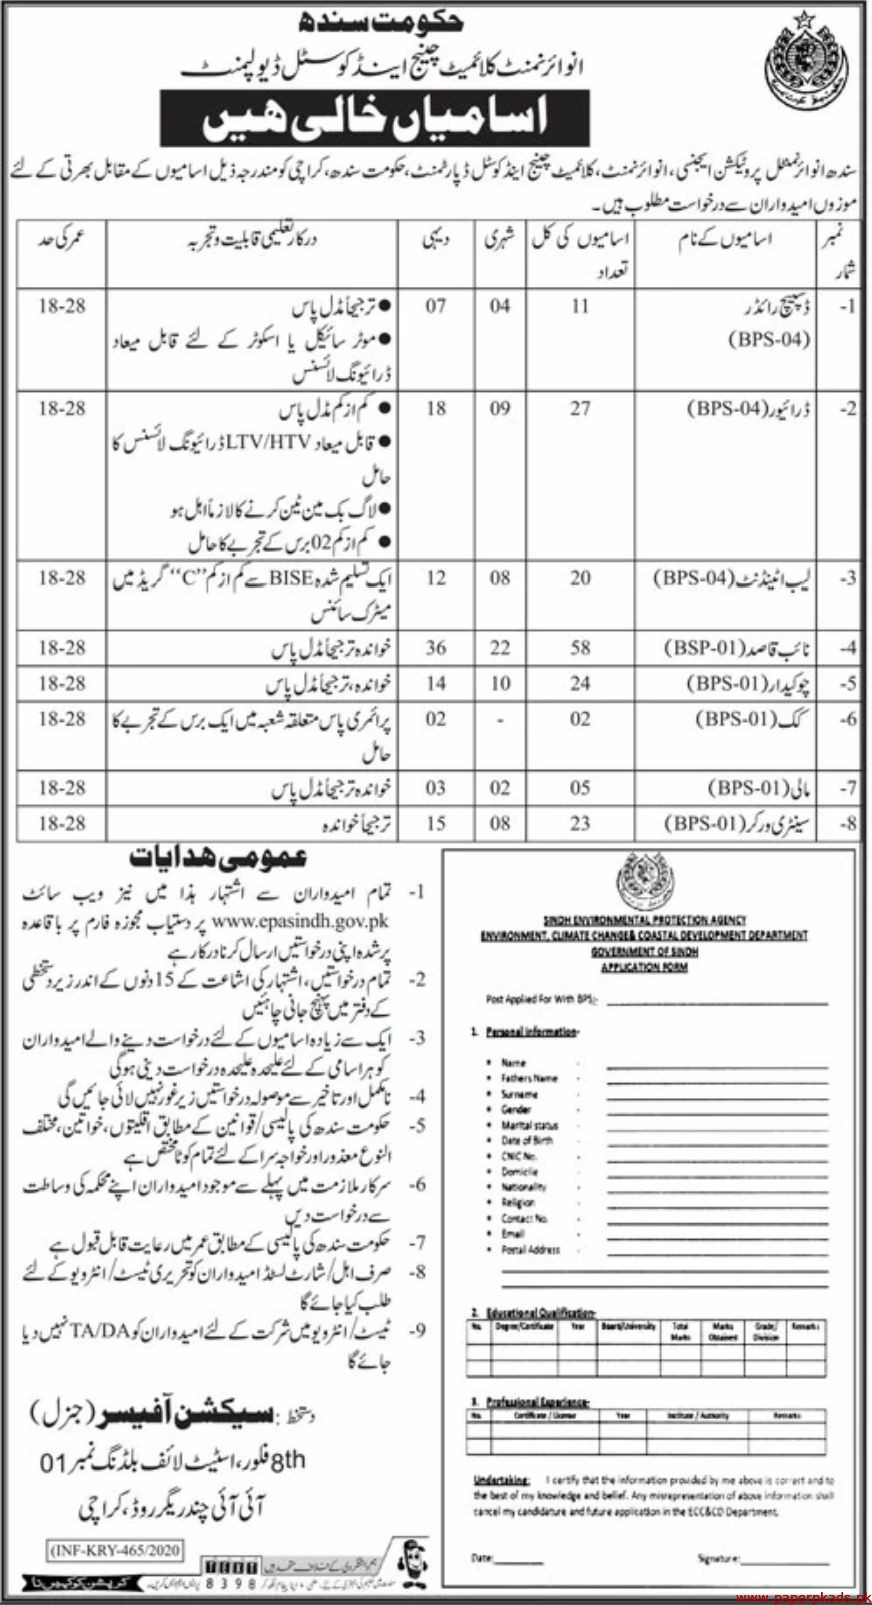 Sindh Environmental Protection Agency Jobs 2020 Latest